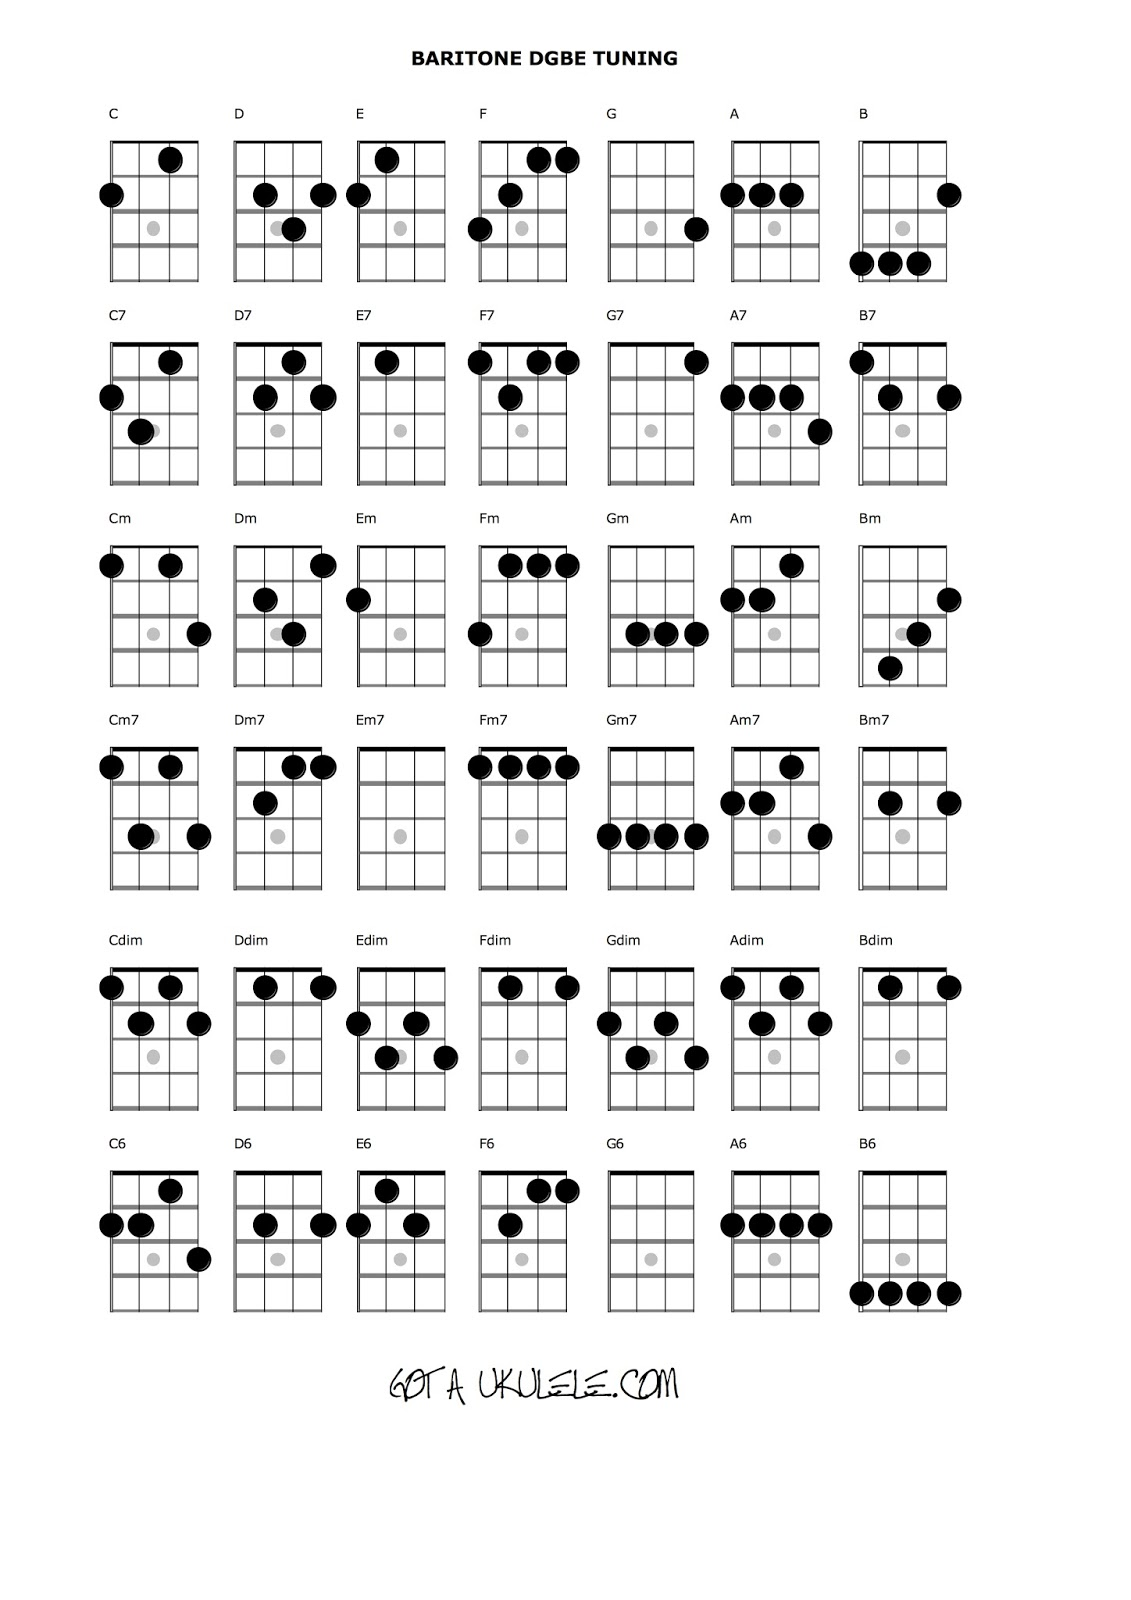 image about Printable Ukulele Chord Chart for Beginners referred to as UKULELE CHORD CHART and FRETBOARD Website page